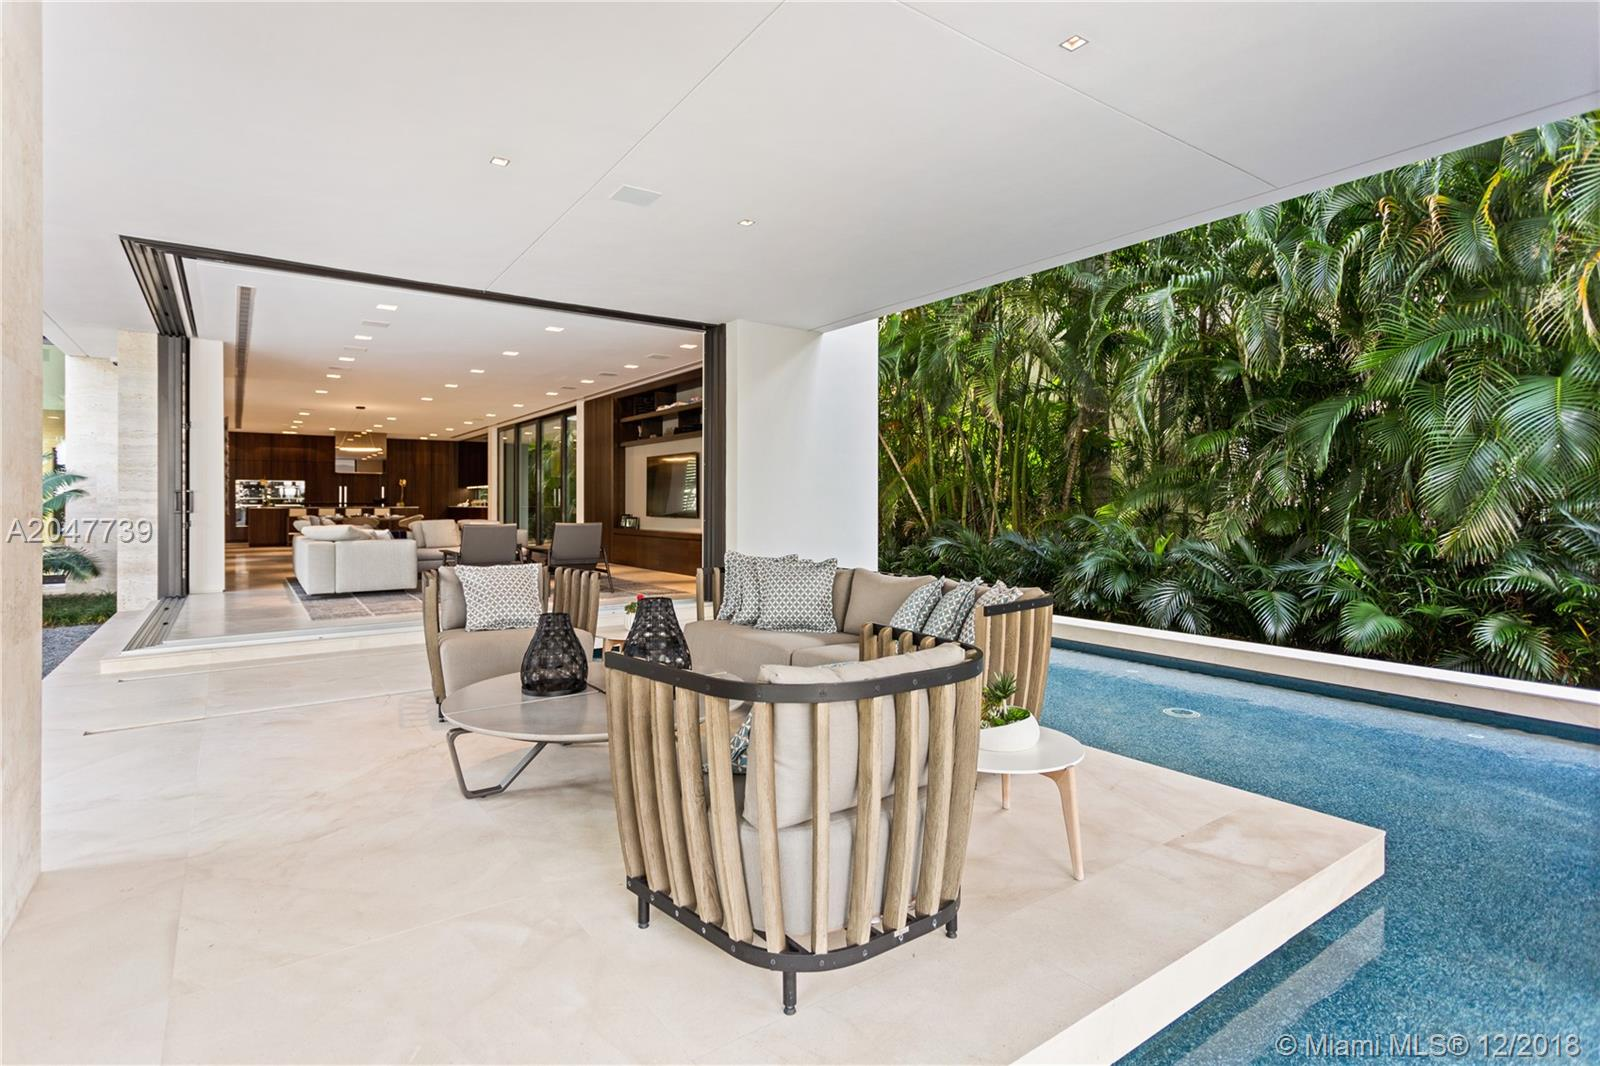 73 Palm av- miami-beach--fl-33139-a2047739-Pic19